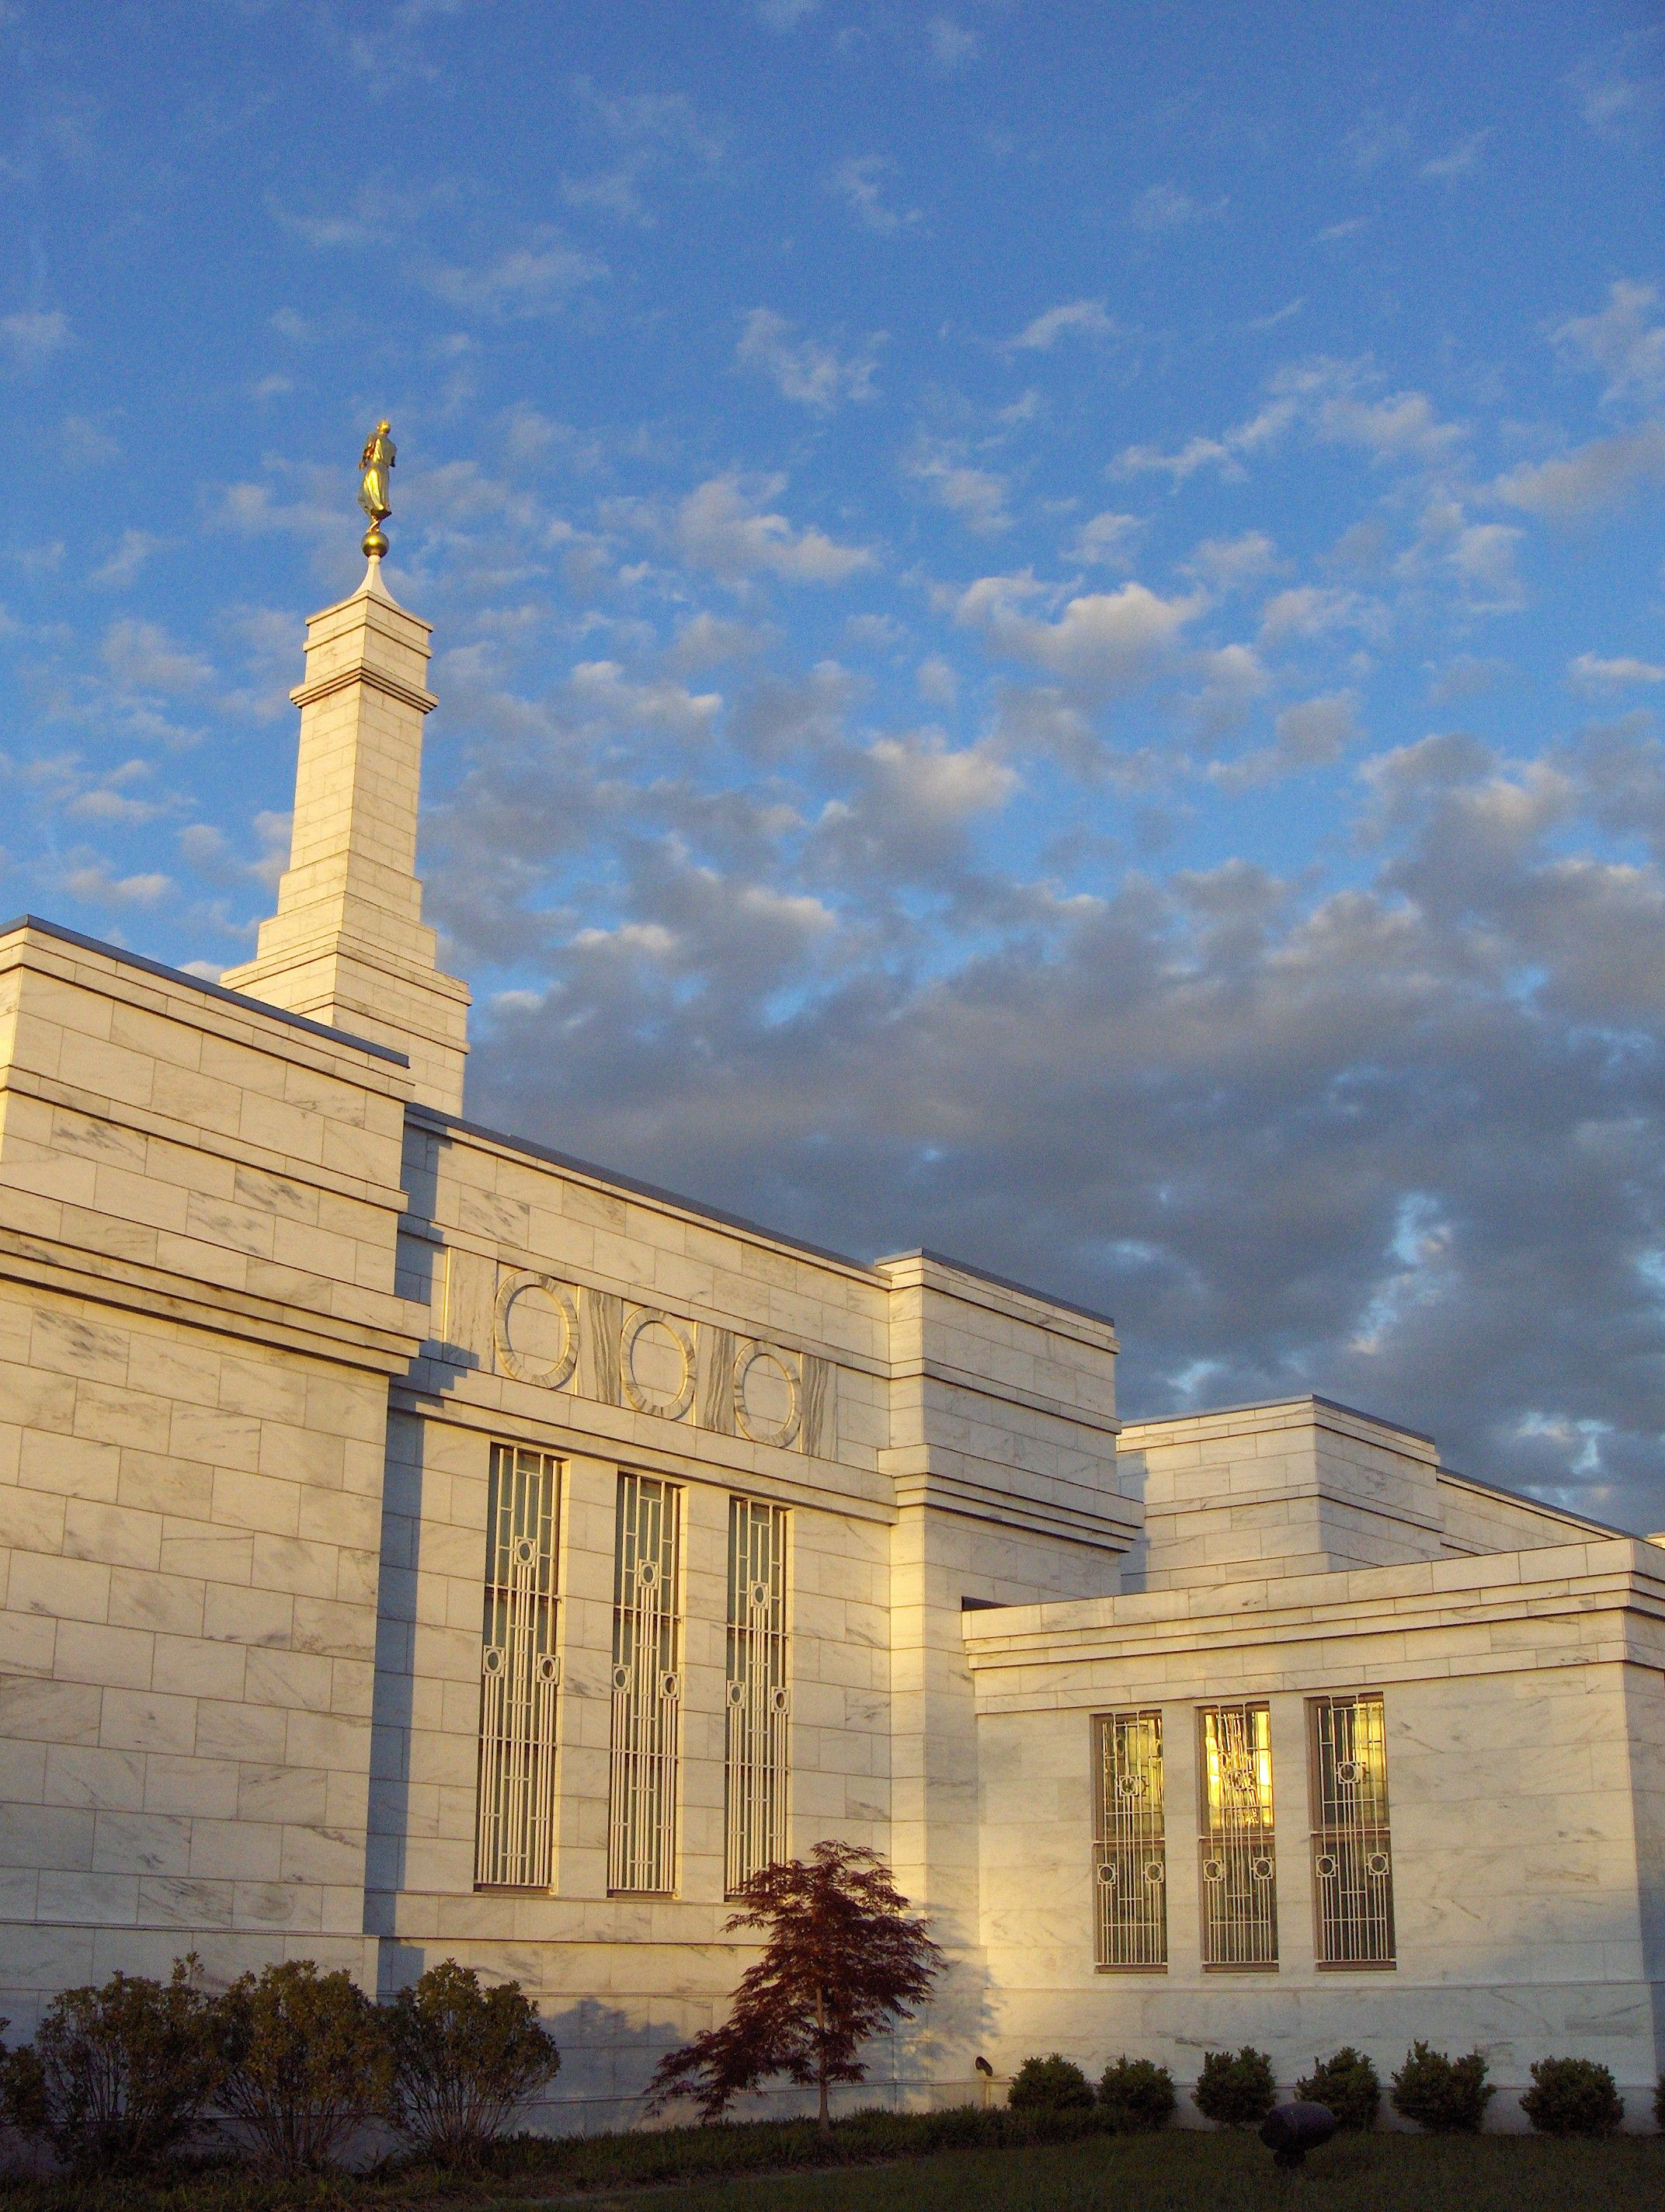 A view of the Columbus Ohio Temple in the evening.